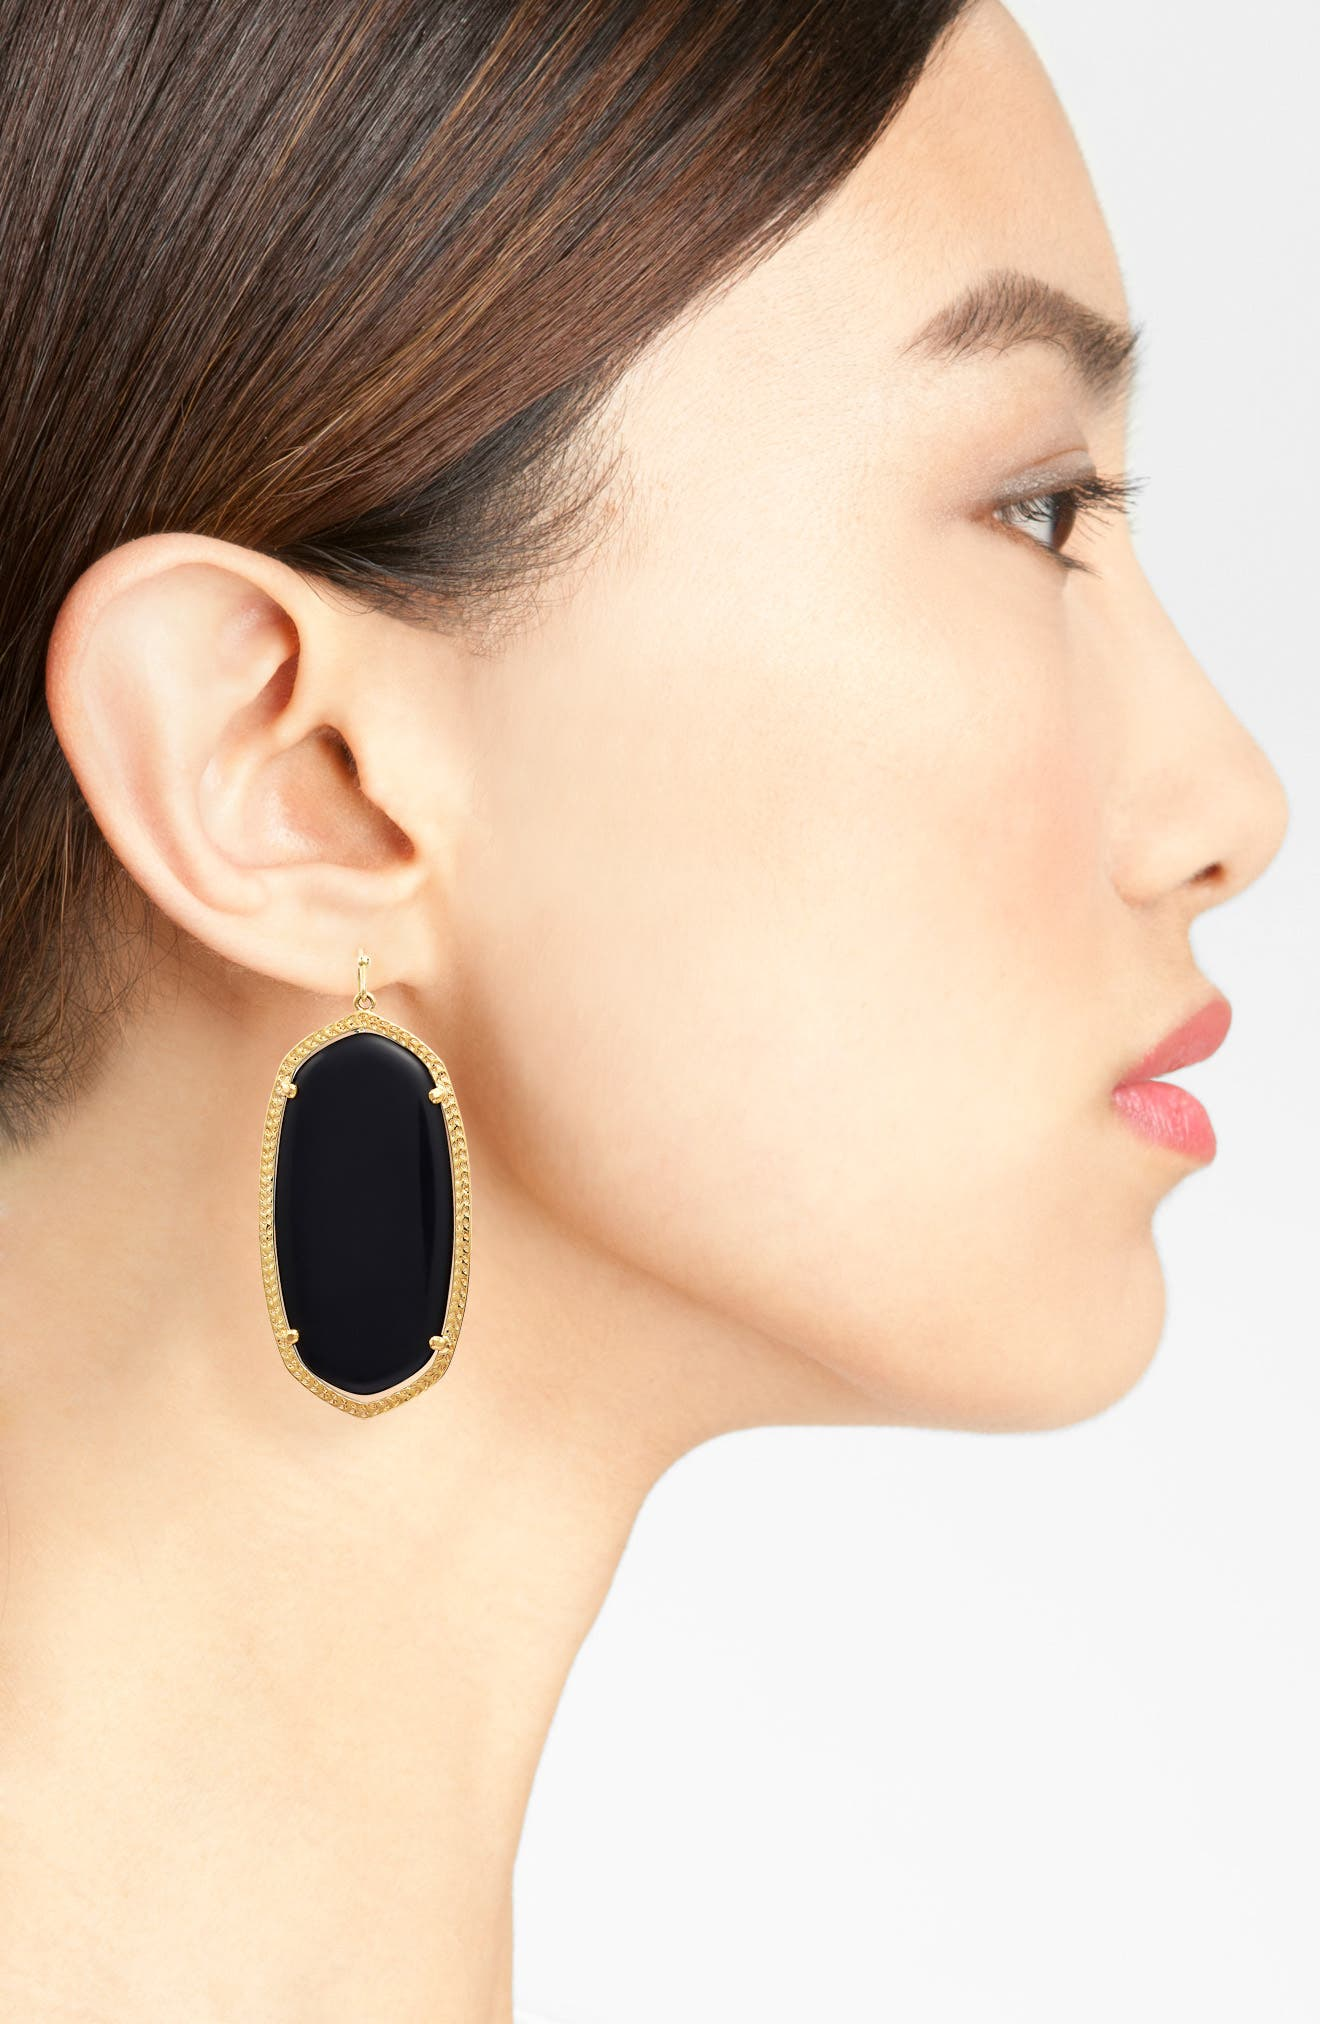 Danielle - Large Oval Statement Earrings,                             Alternate thumbnail 3, color,                             001